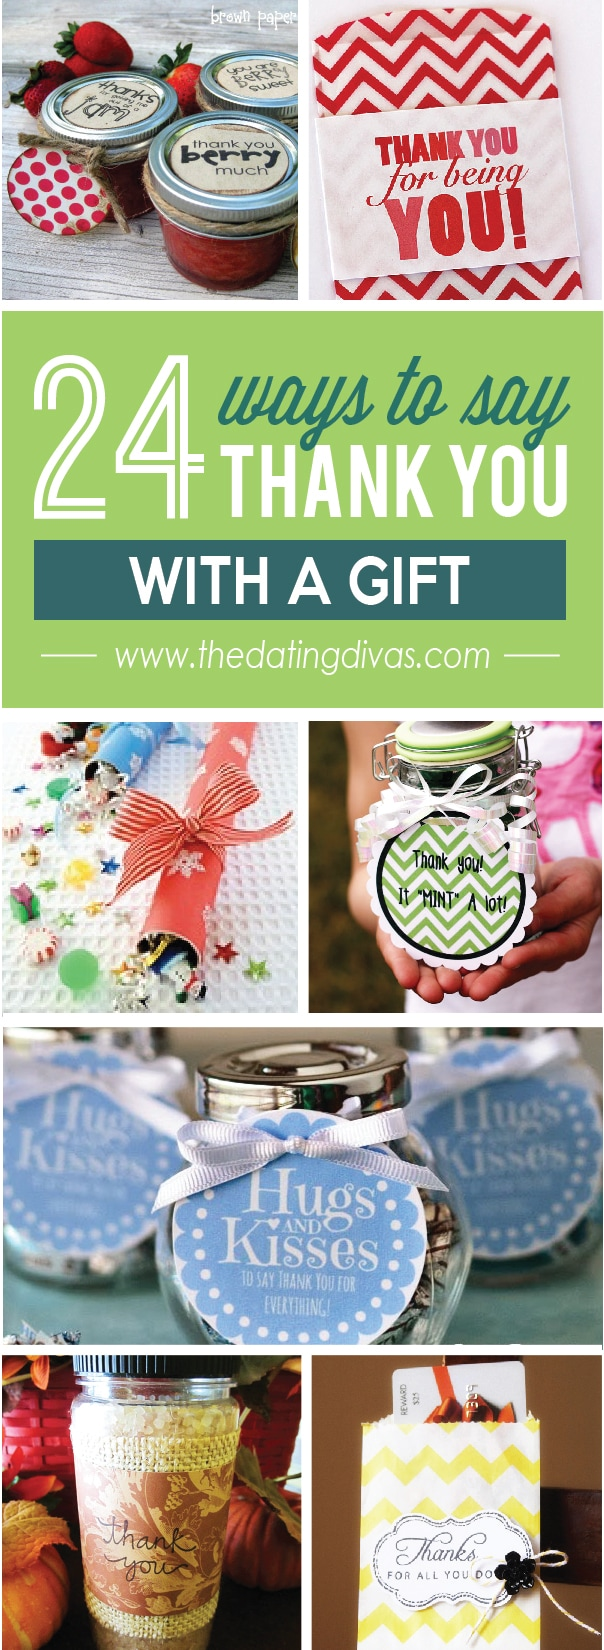 24 ways to say Thank You With a Gift